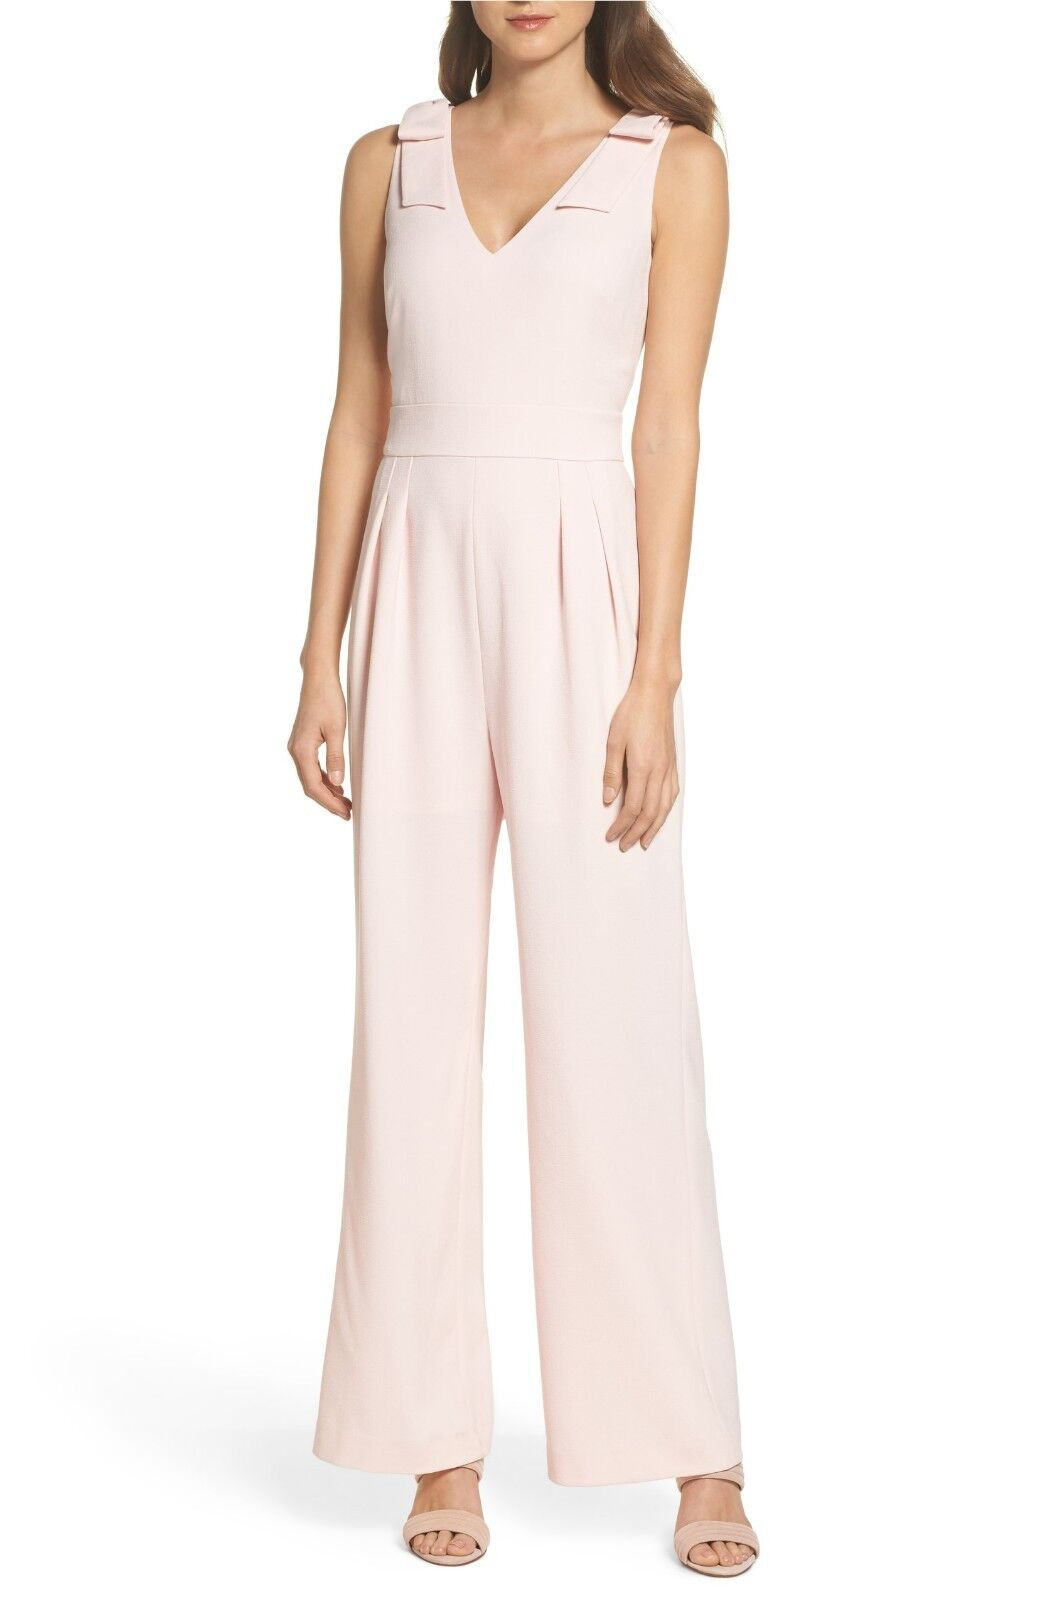 CHELSEA28 Bow Shoulder Jumpsuit, Size 14, Pink, MSRP  168,  JC1037